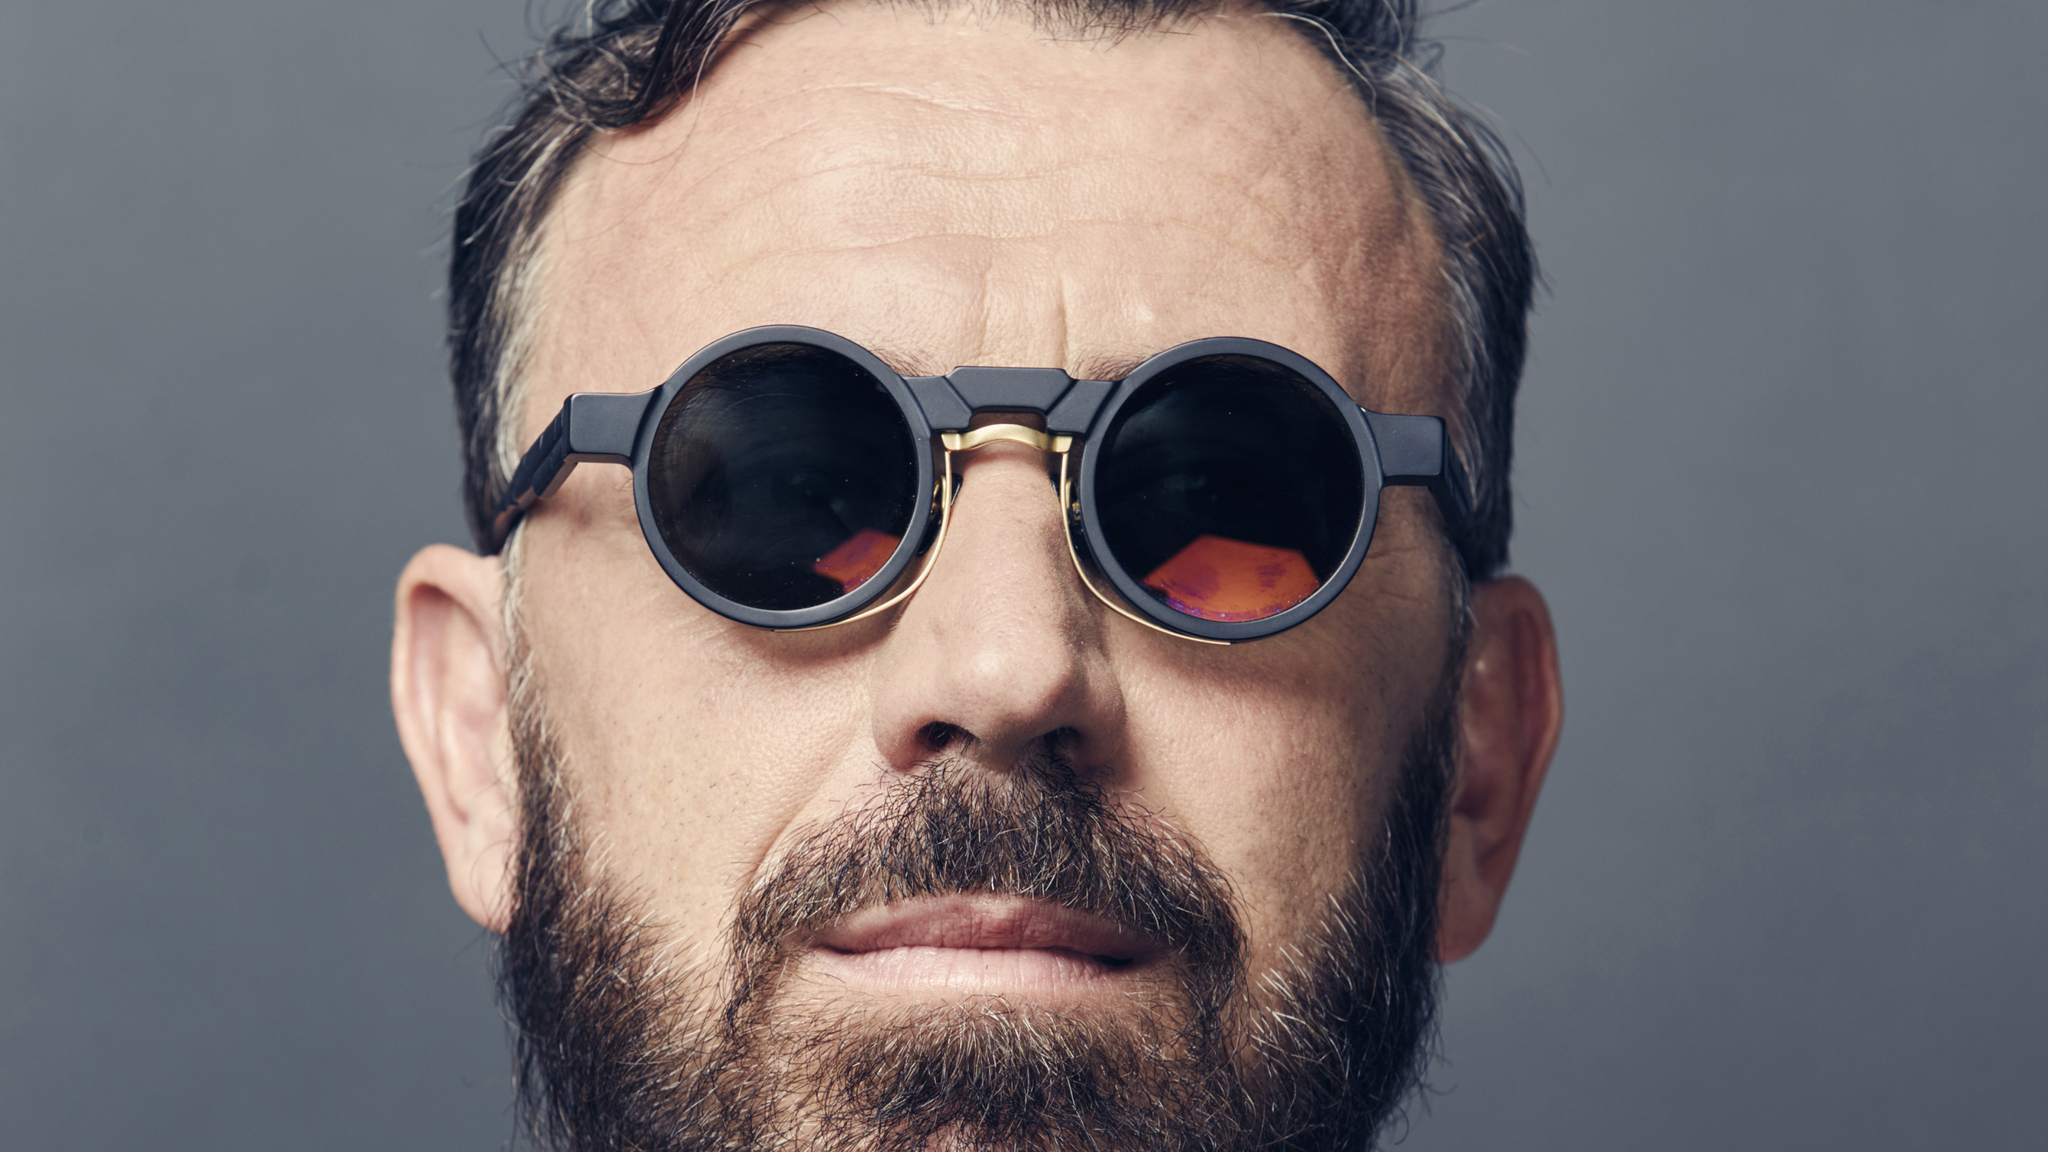 Benny Benassi Releases First Single Of 2019 'Inside' With Chris Nasty!